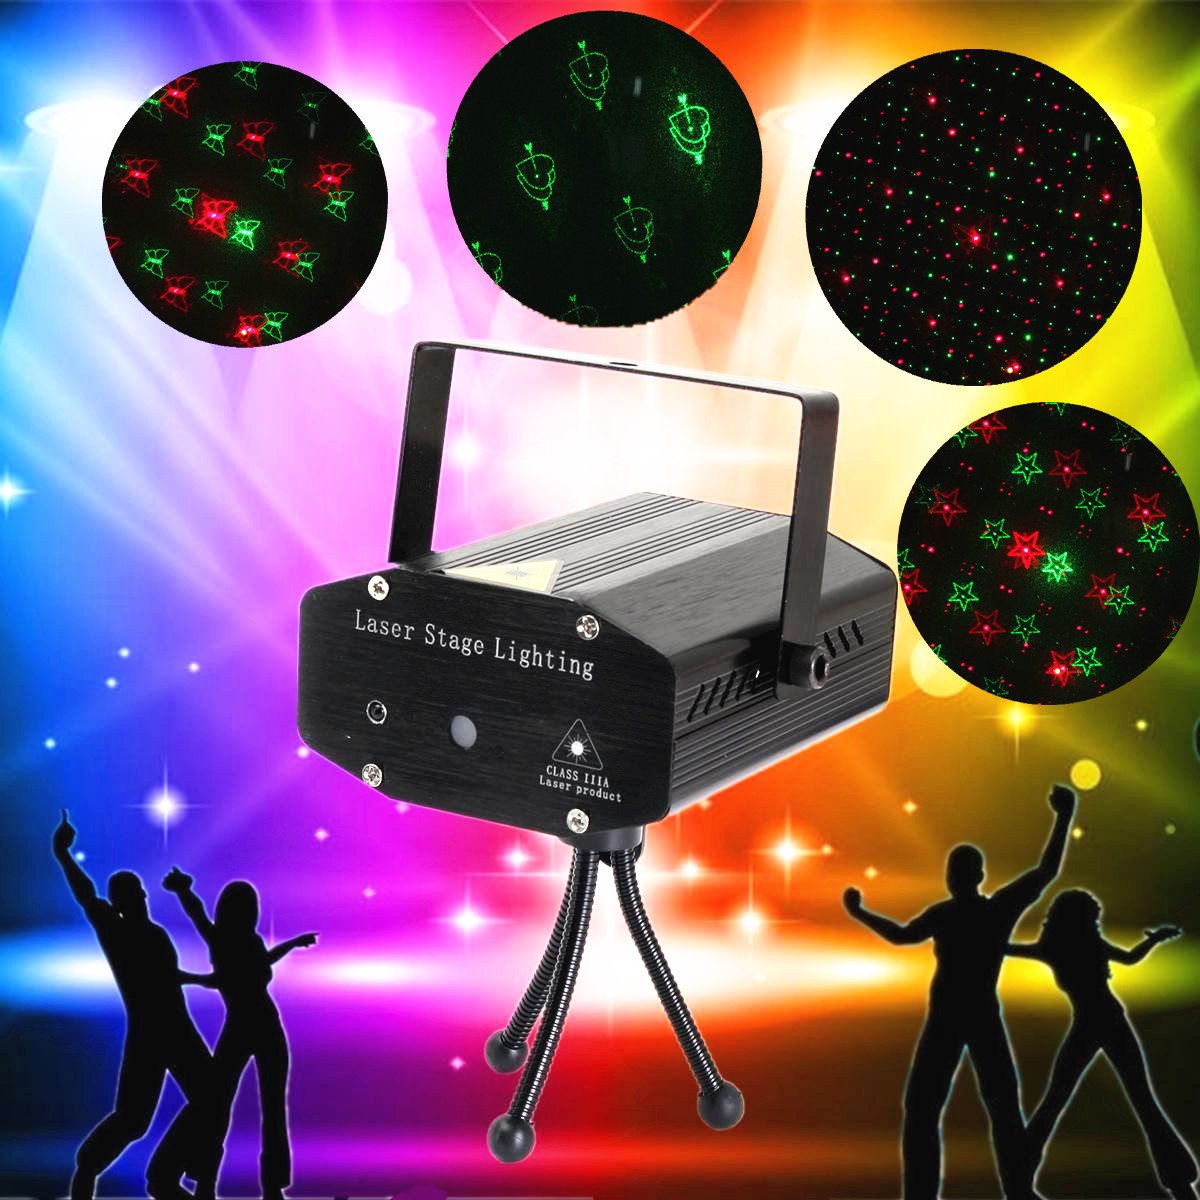 Mini Portable 4 Mode Laser Projector Lights Stage Light DJ Home Christmas Party Holiday Show Stage Lighting Effect led effect show stage lamp for dj ktv bar disco lights laser projector showers light christmas holiday home decoration lighting